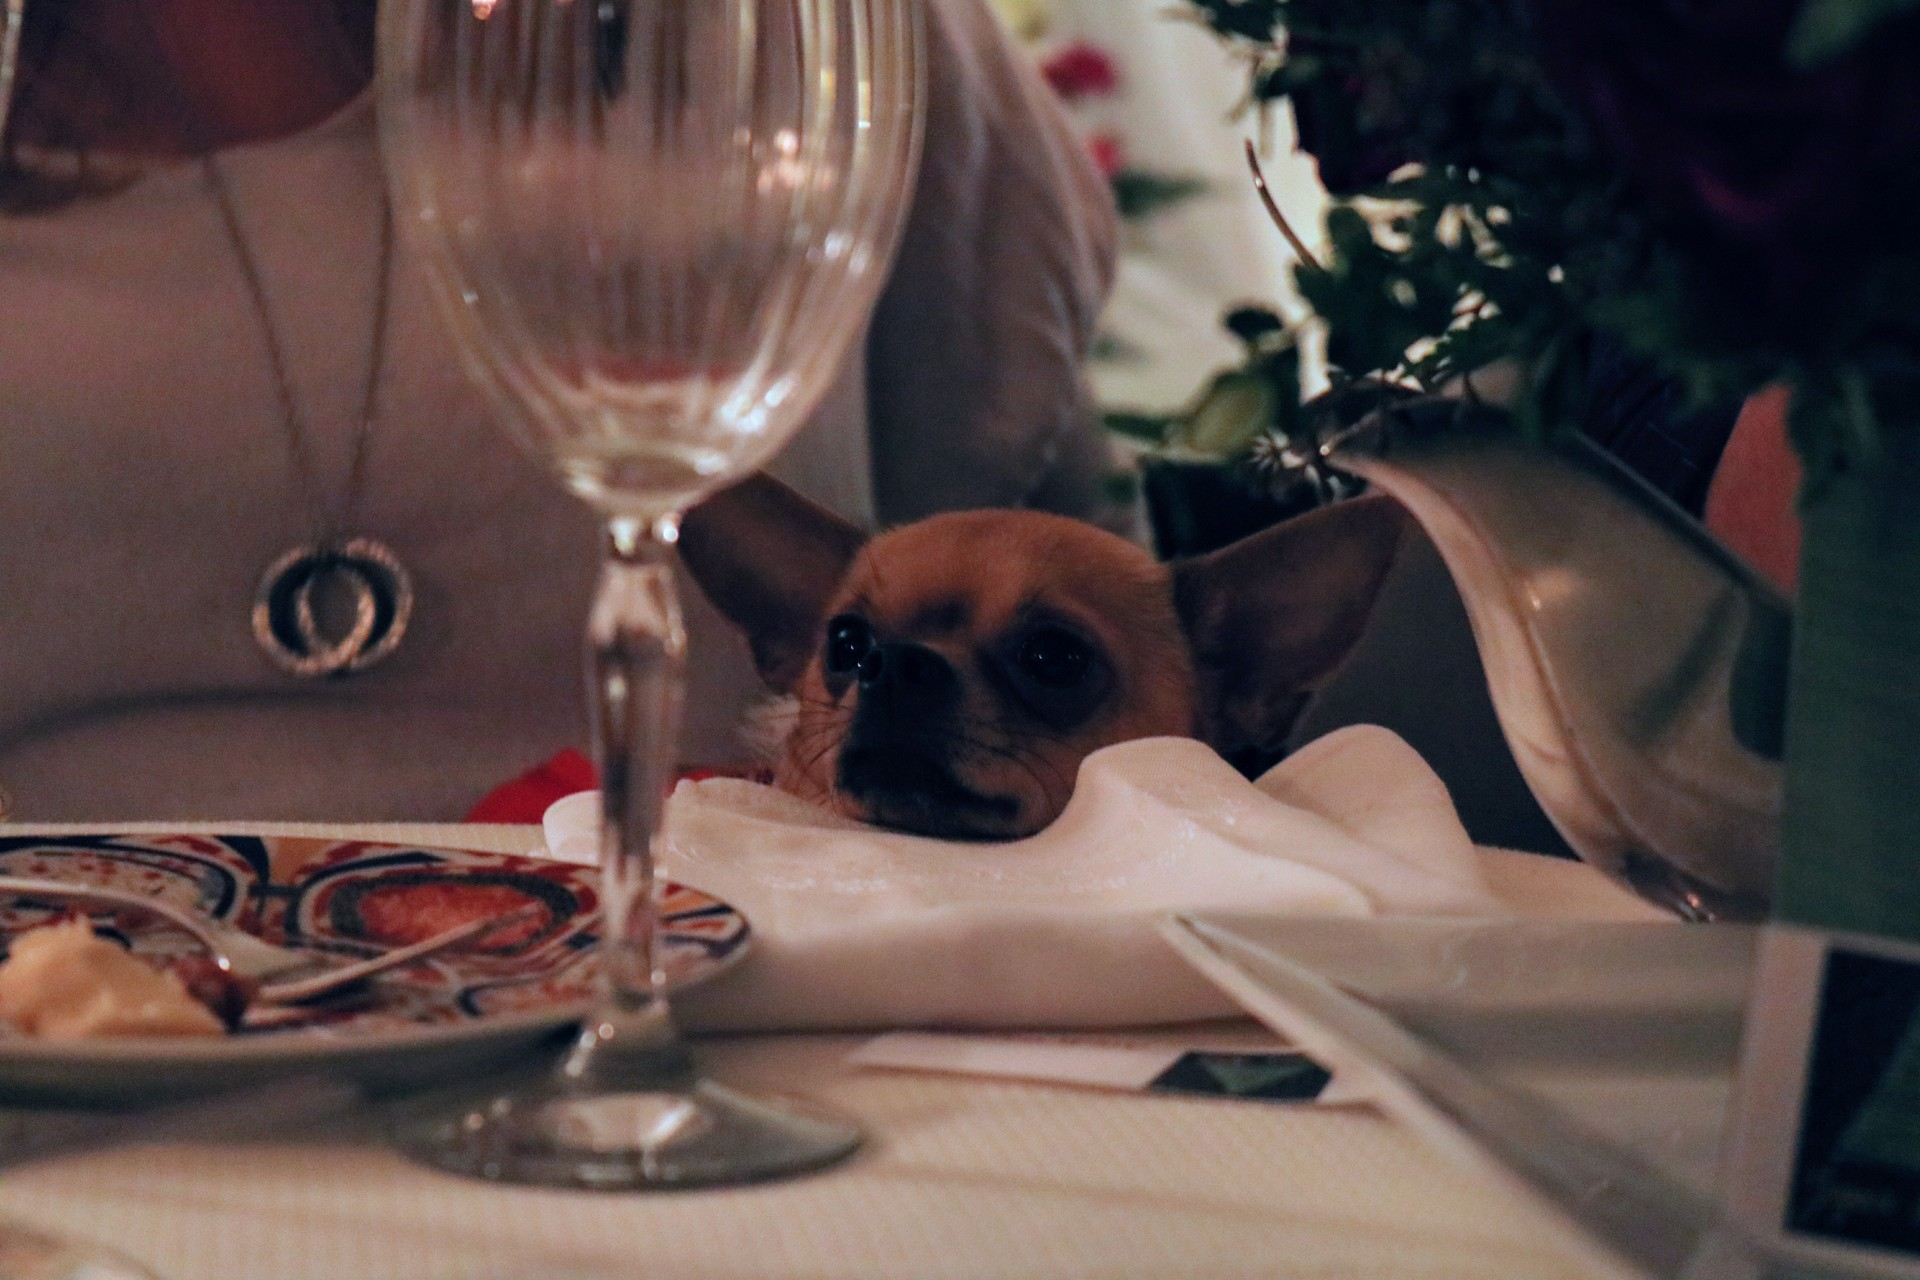 Chihuahua waiting for table scraps